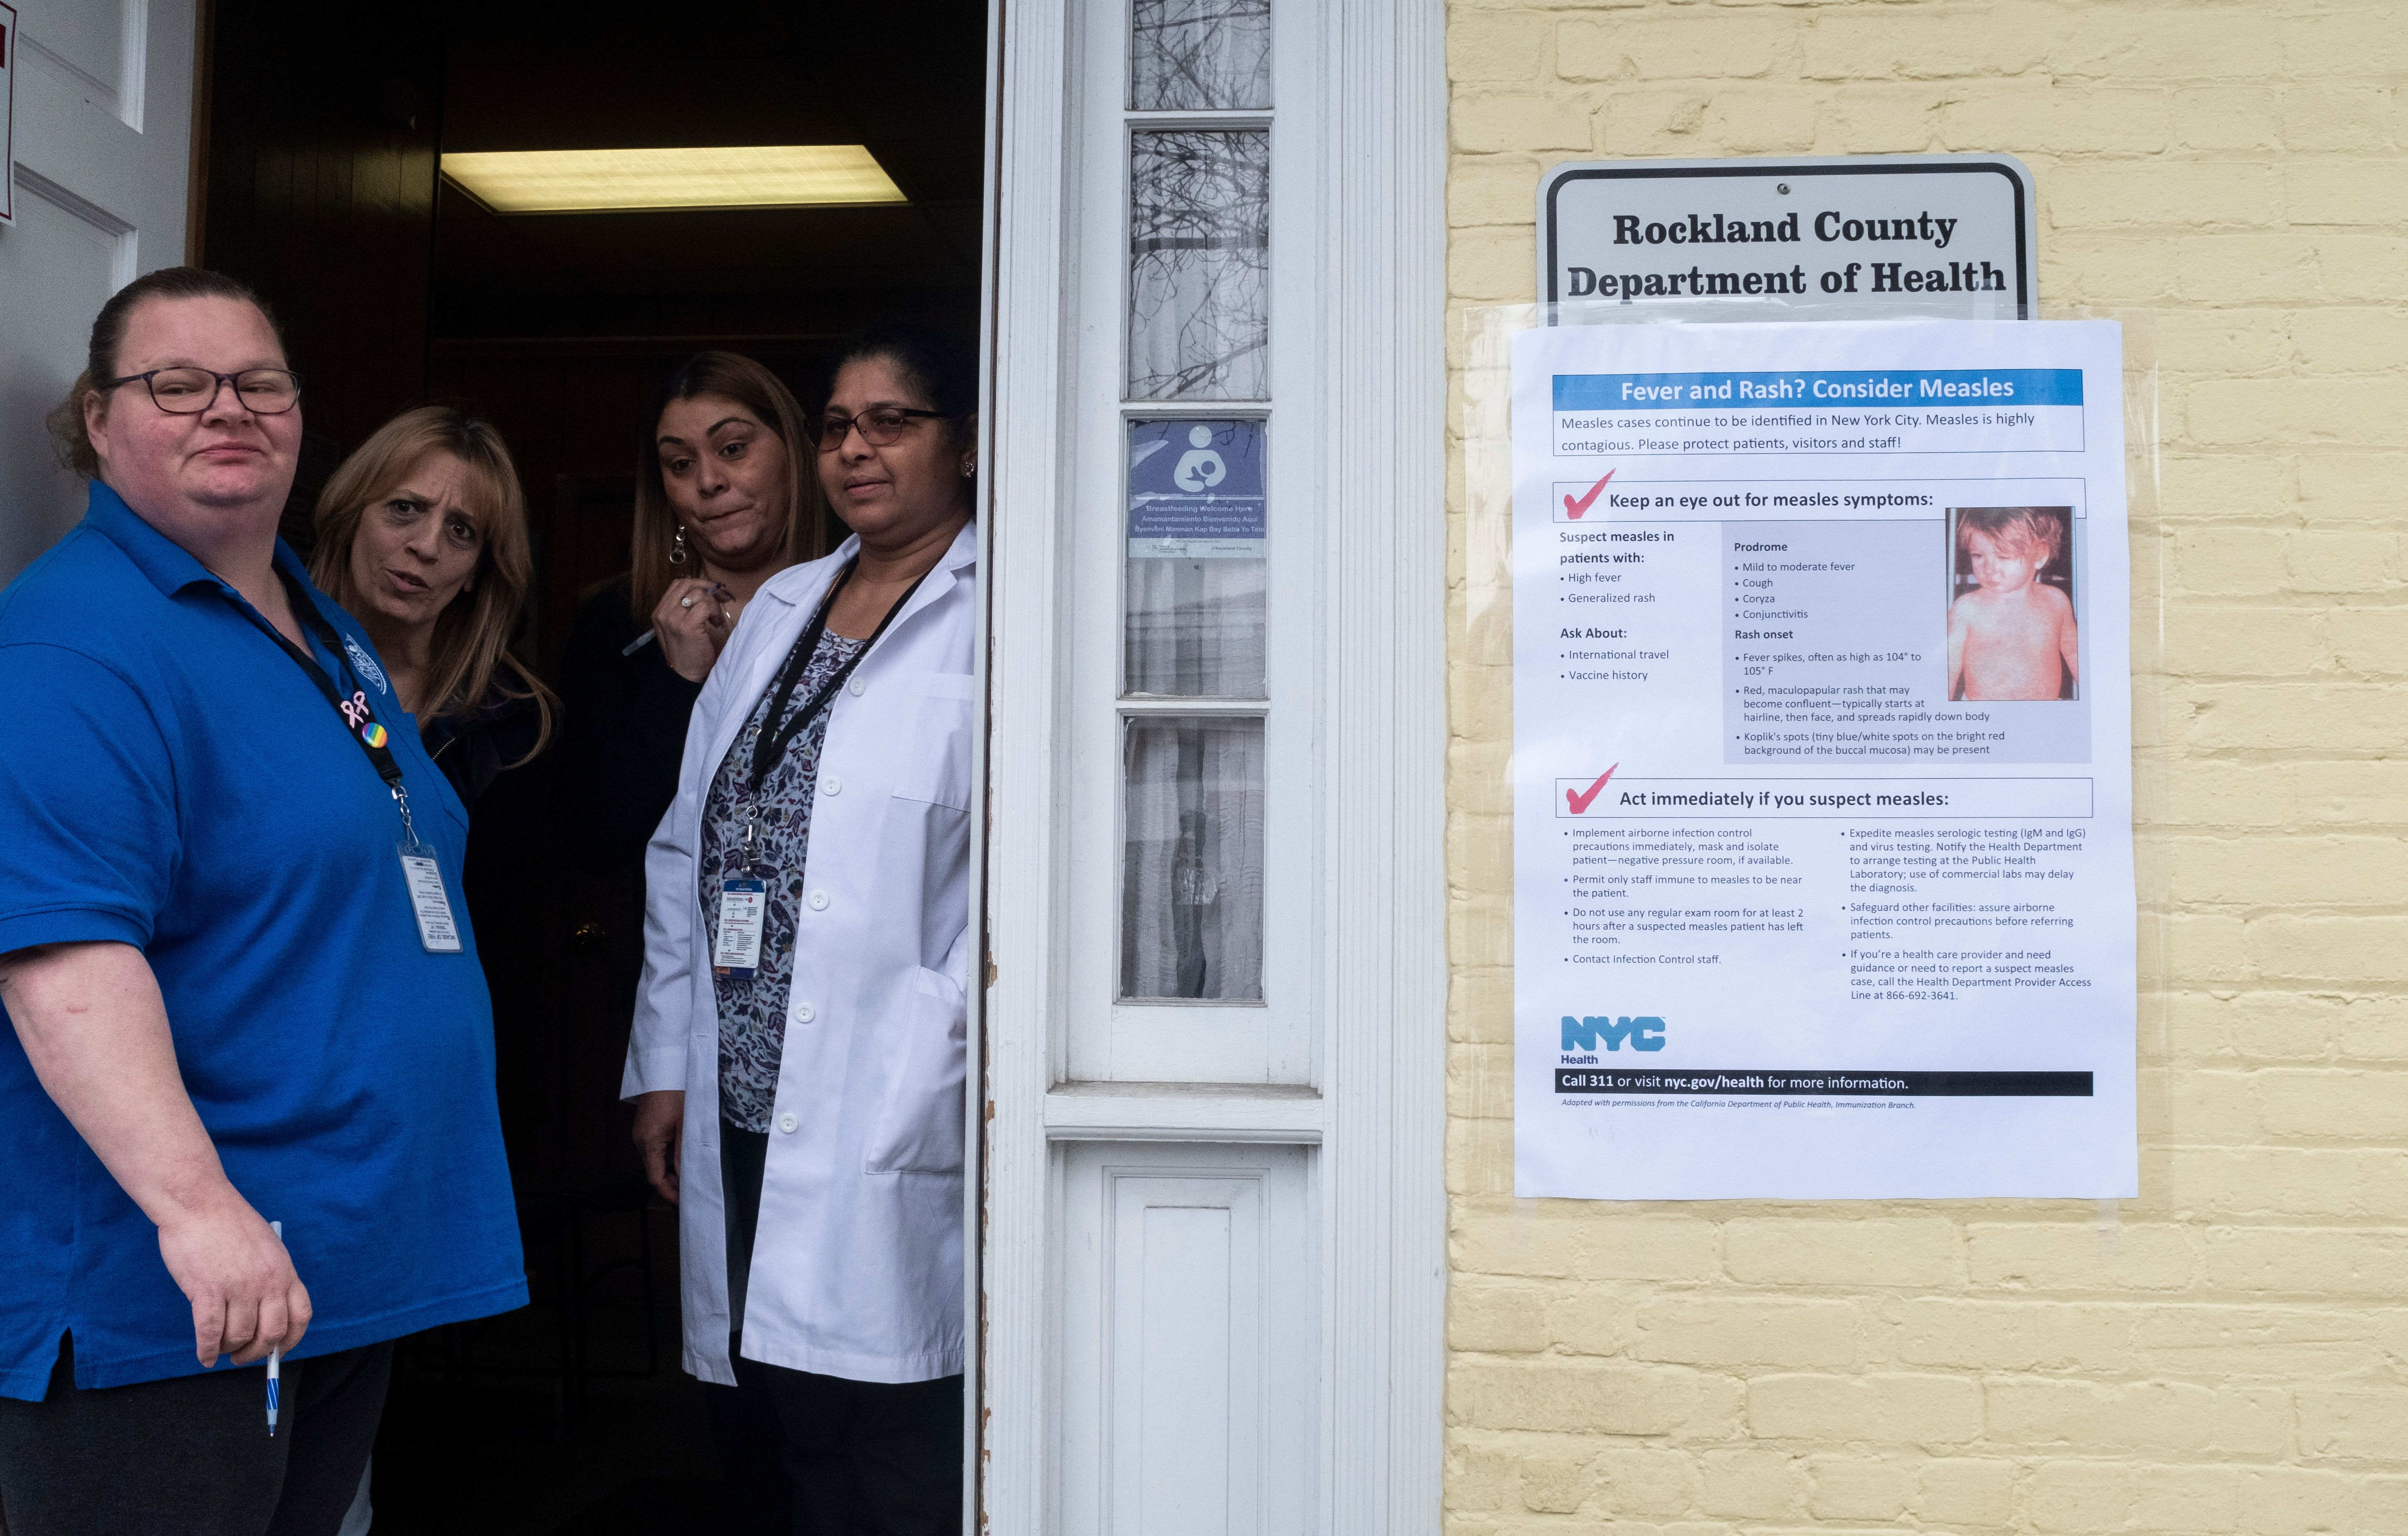 This picture taken on April 5, 2019 shows nurses waiting for patients at the Rockland County Health Department in Haverstraw, Rockland County, New York. (JOHANNES EISELE/AFP/Getty Images)